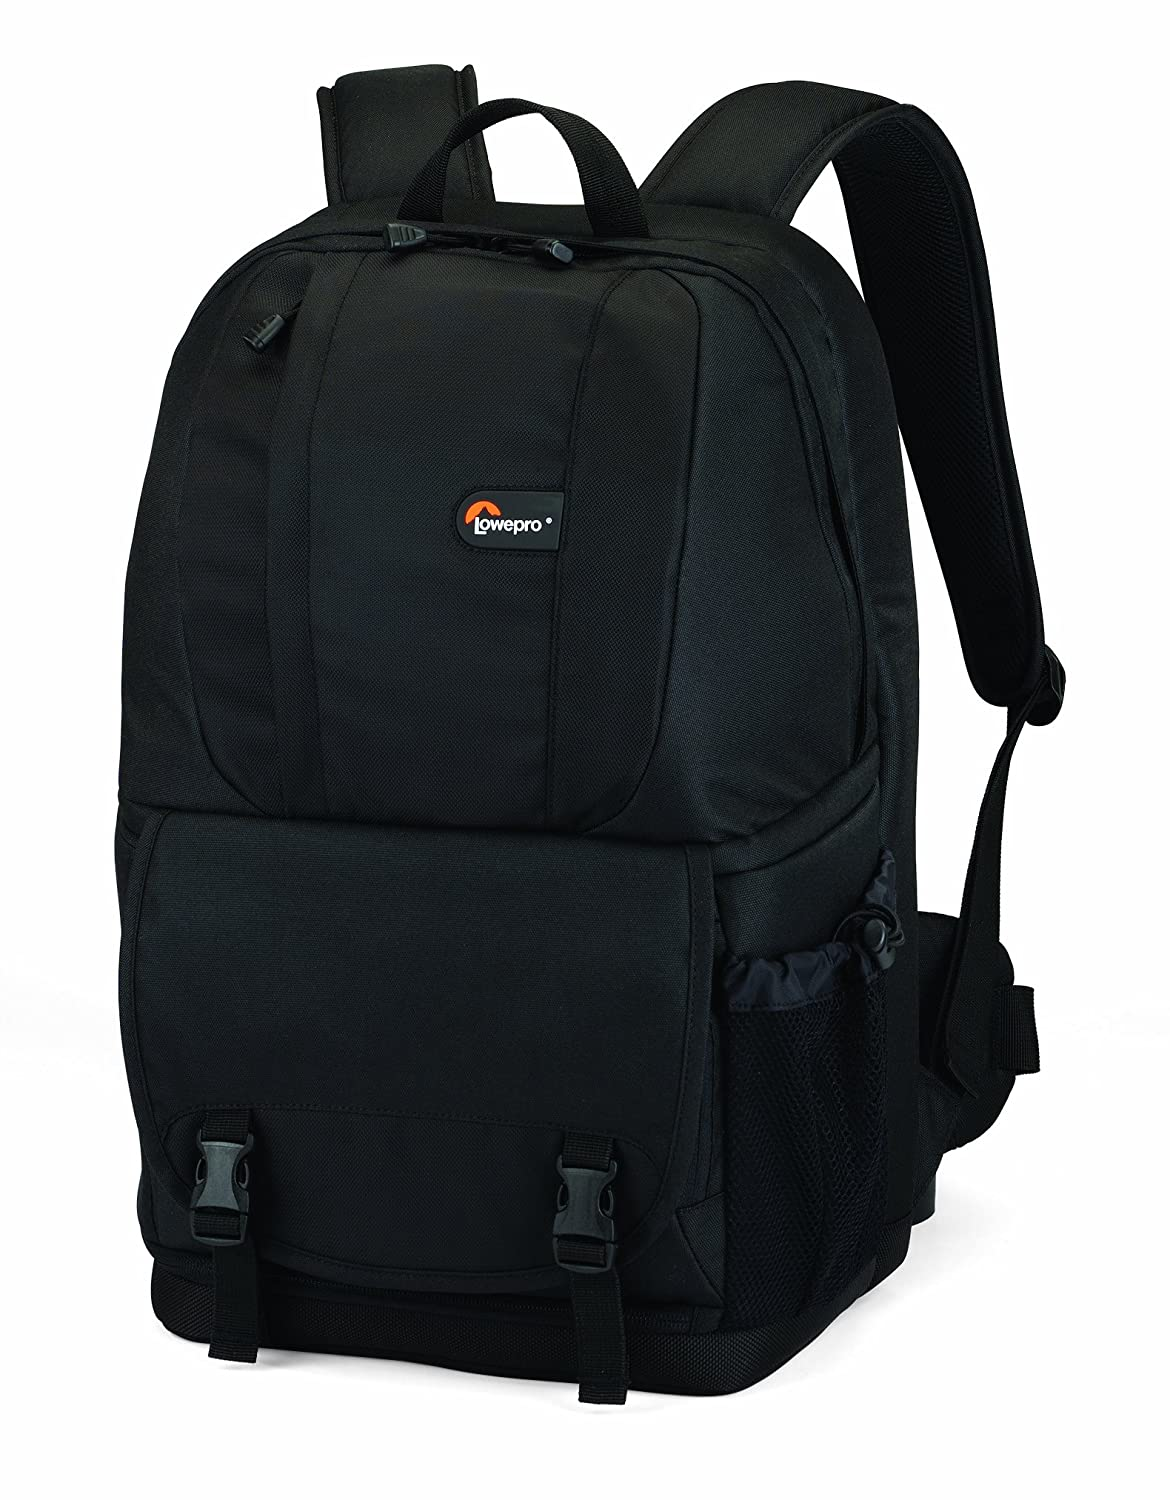 c67300a4fdd Amazon.com : Lowepro Fastpack 350 DSLR Camera Backpack : Photographic  Equipment Bags : Camera & Photo